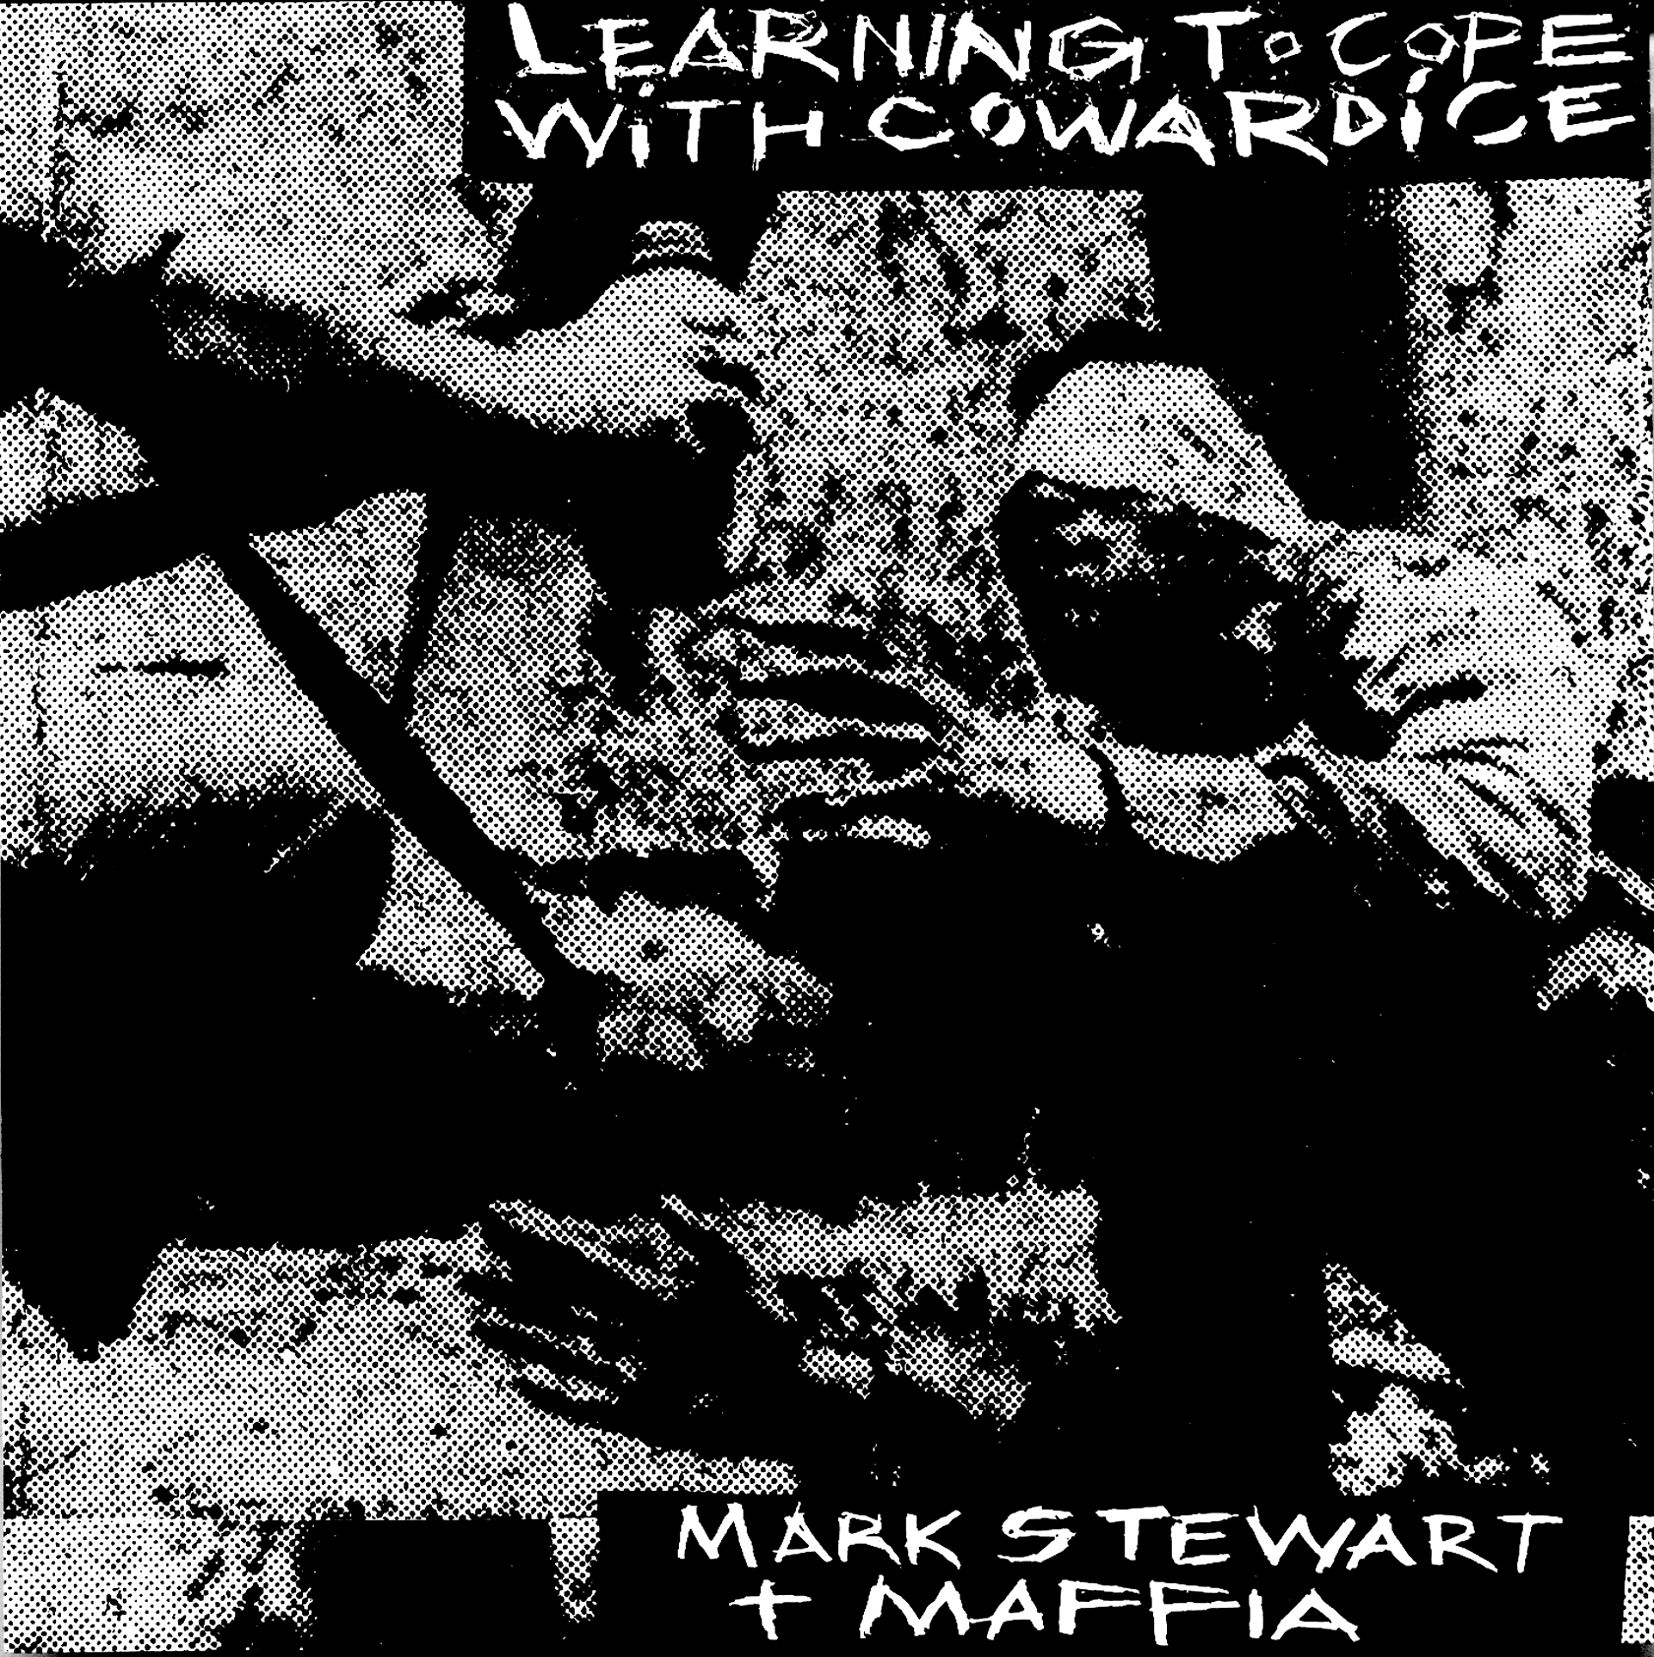 Learning To Cope With Cowardice / The Lost Tapes - 2CD - Mark Stewart